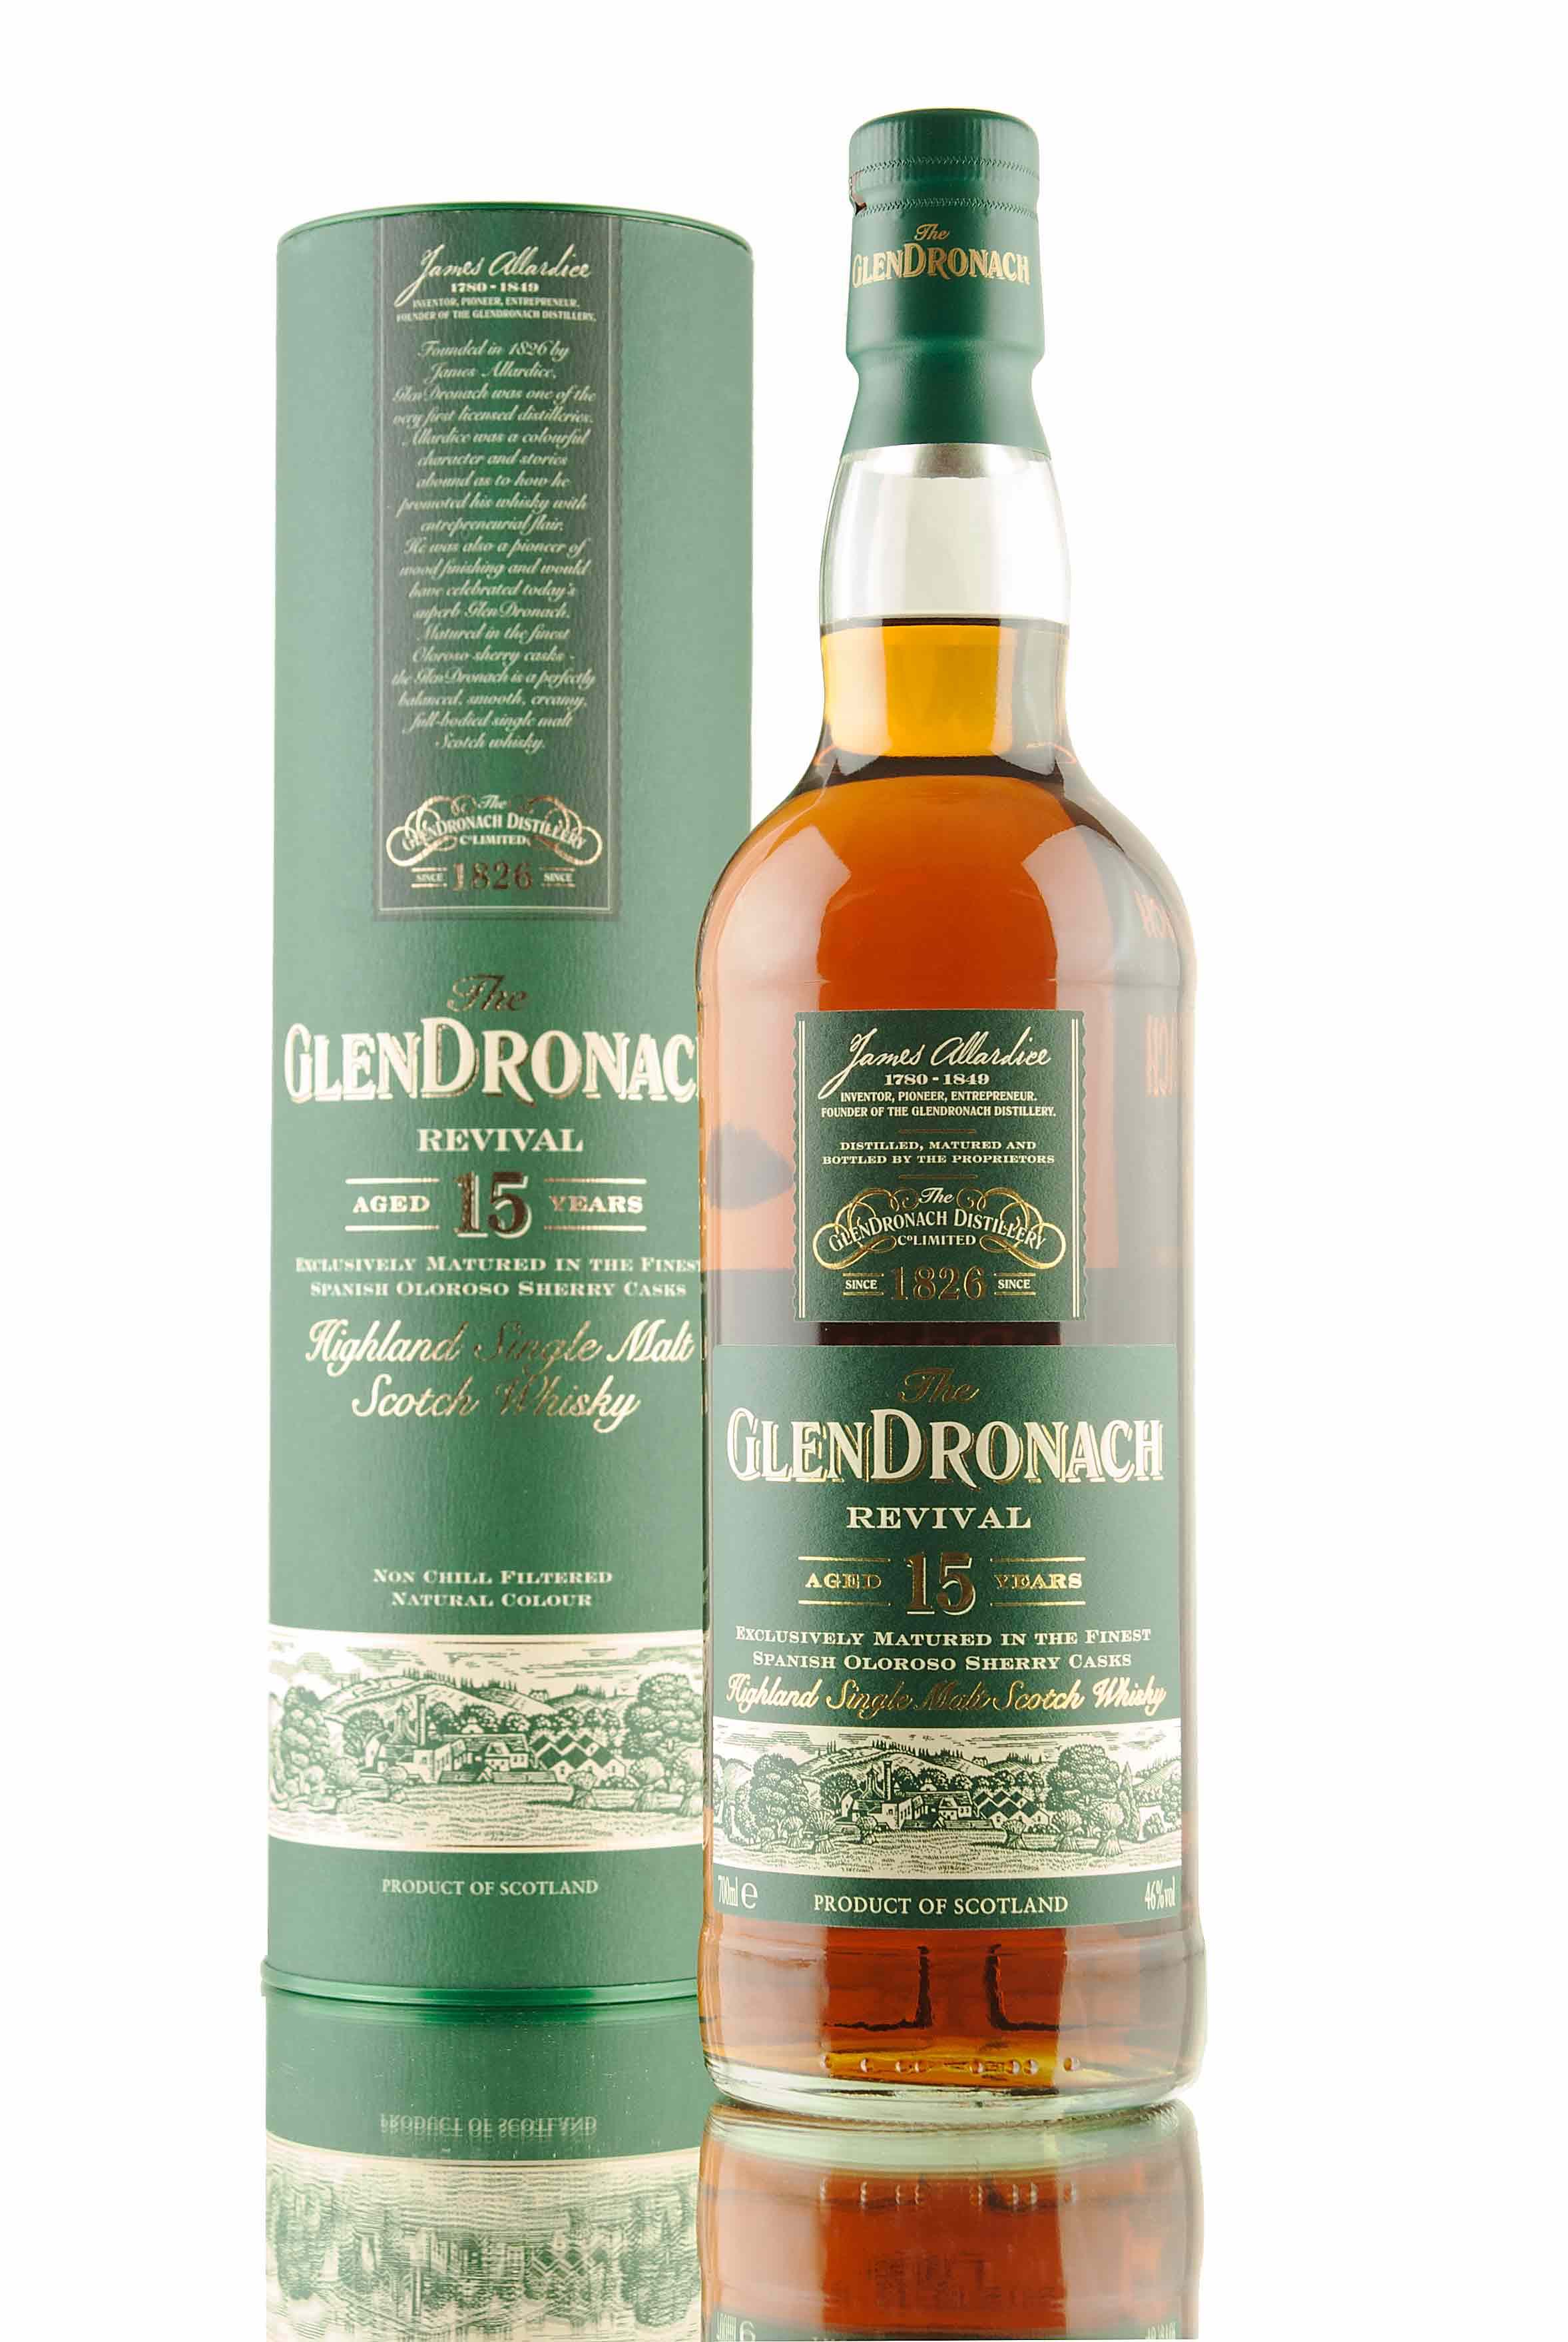 GlenDronach Revival / 15 Year Old